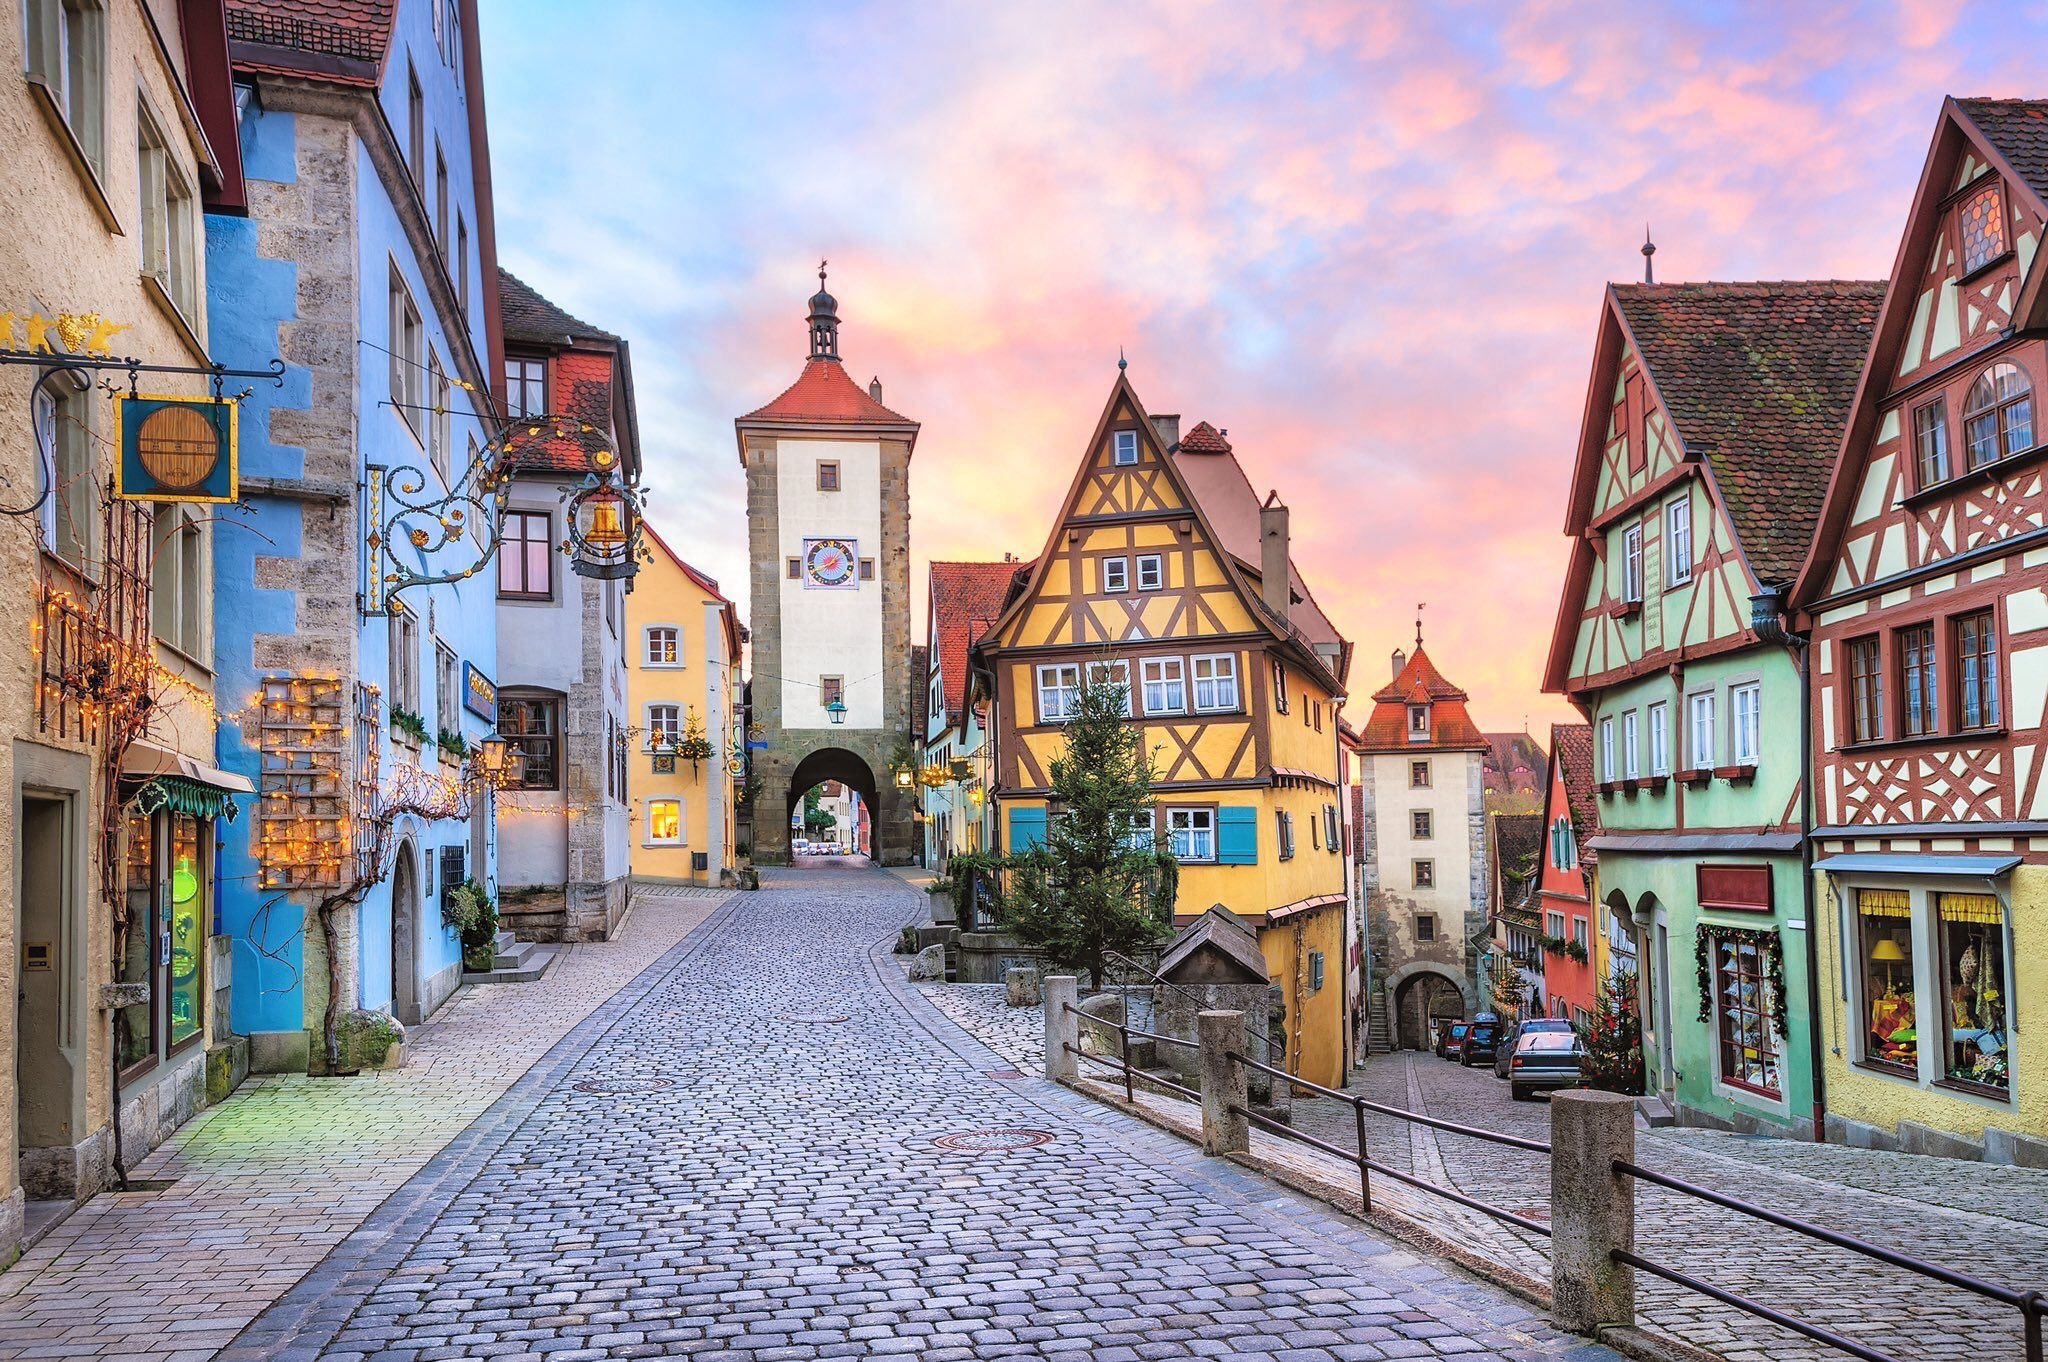 """Colorful half-timbered houses in the preserved medieval town of Rothenburg  ob der Tauber, #Germany #Bavaria""""   Road trip fun, Cities in germany,  Germany travel"""